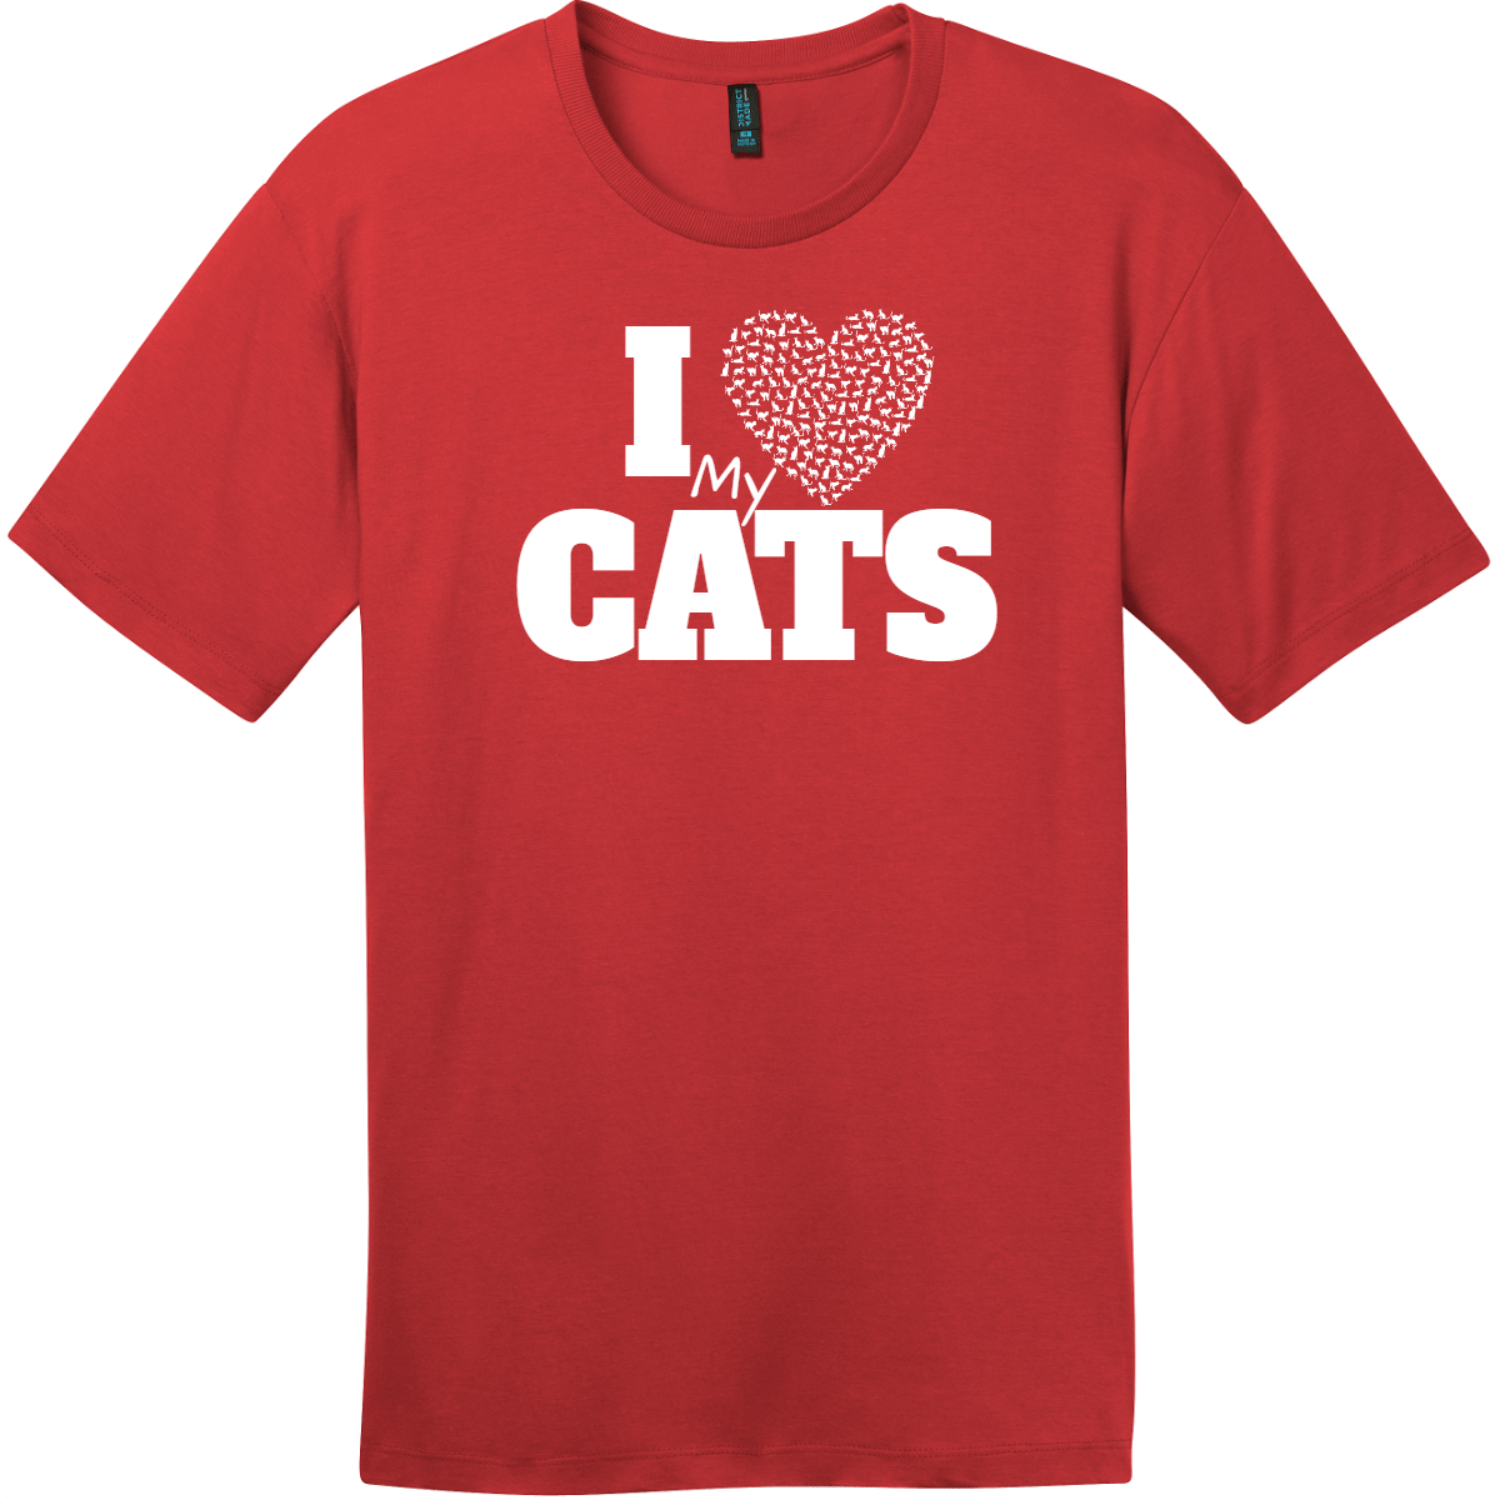 I Love My Cats Heart T-Shirt Classic Red District Perfect Weight Tee DT104